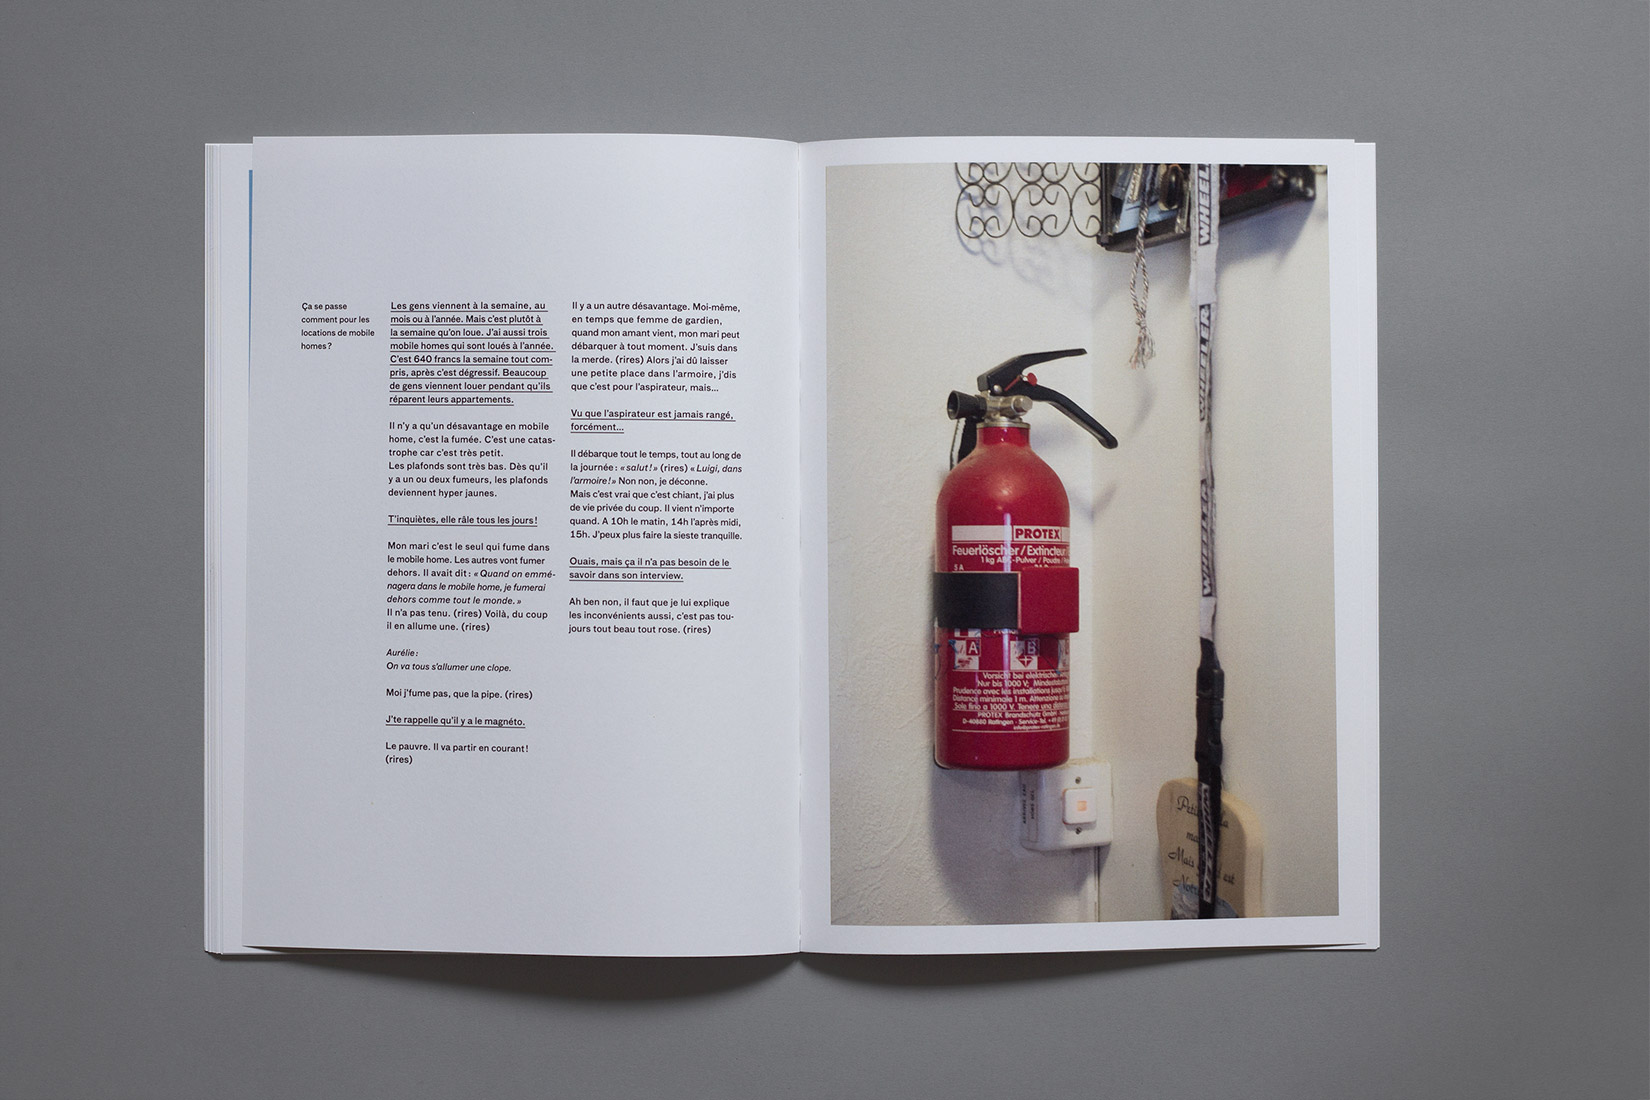 Les Brenets - Camping, indoor, small red fire extinguisher, book, photography